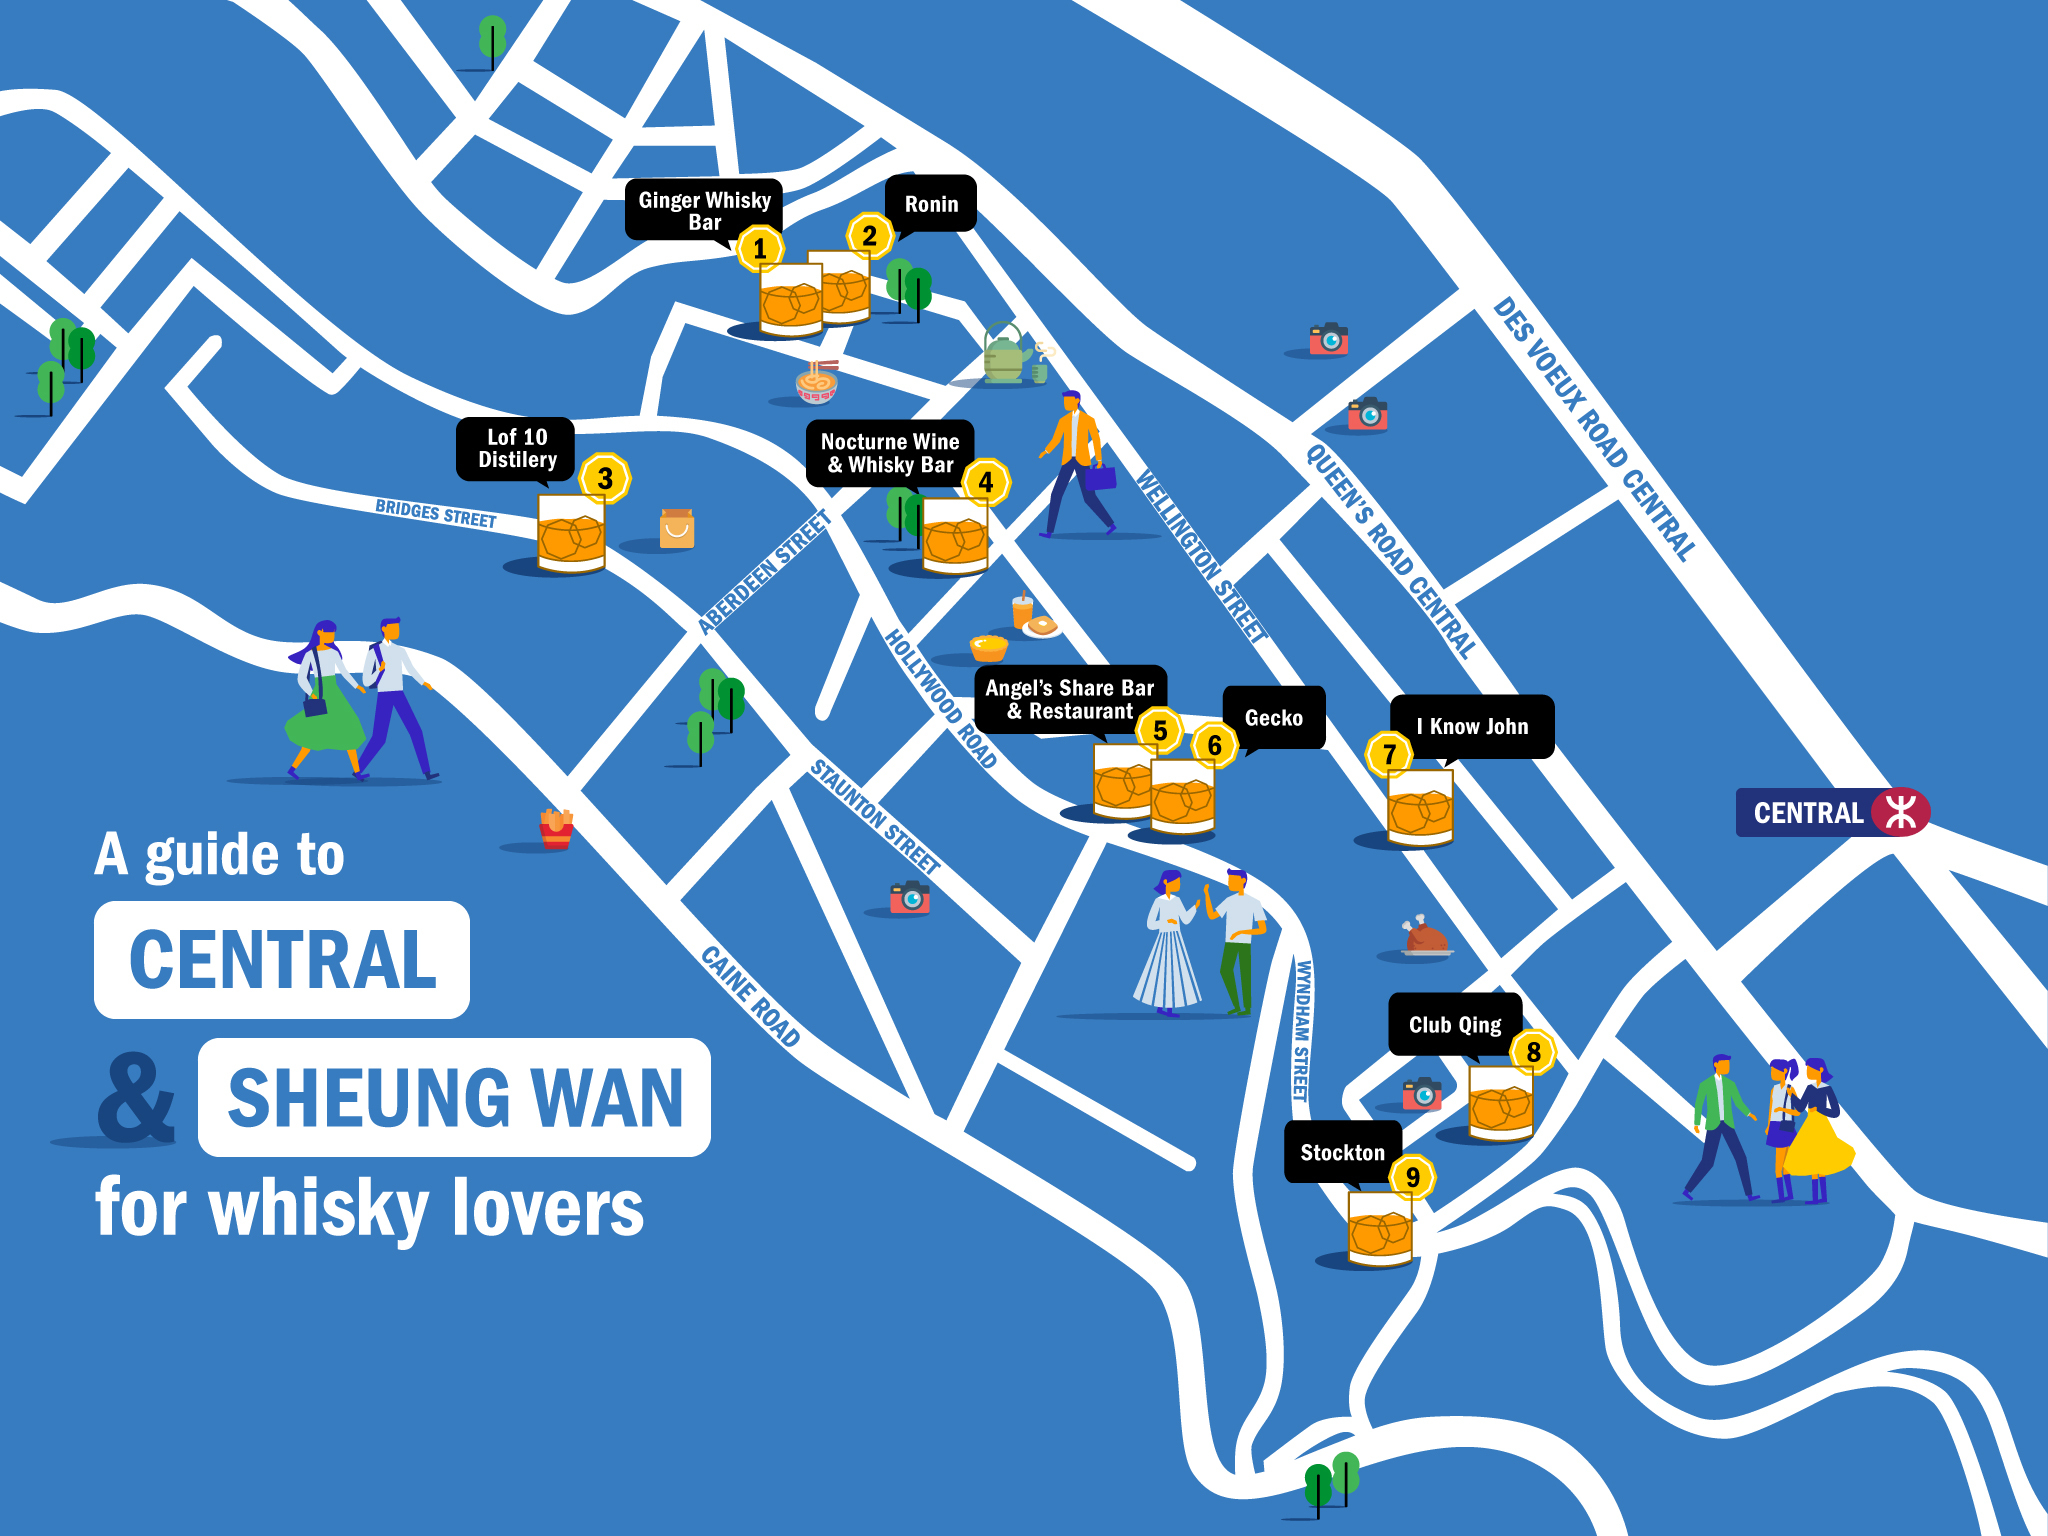 Whisky lover's guide to Central and Sheung Wan